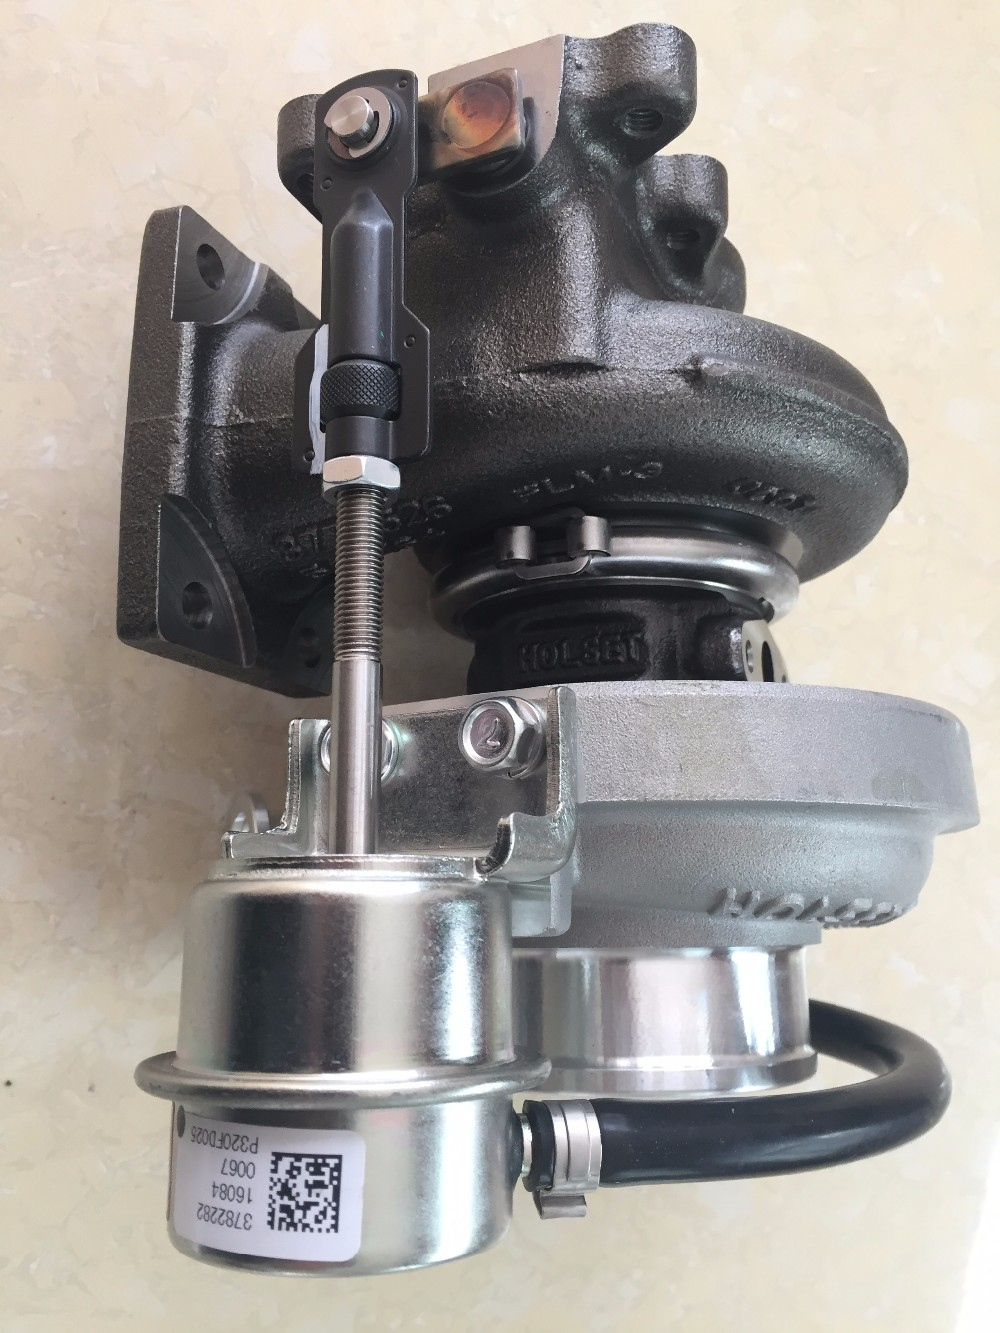 Truck Excavator Engine Parts Sale Holsets HE351W Turbo 3782370 Diesel Engine ISDE Turbocharger